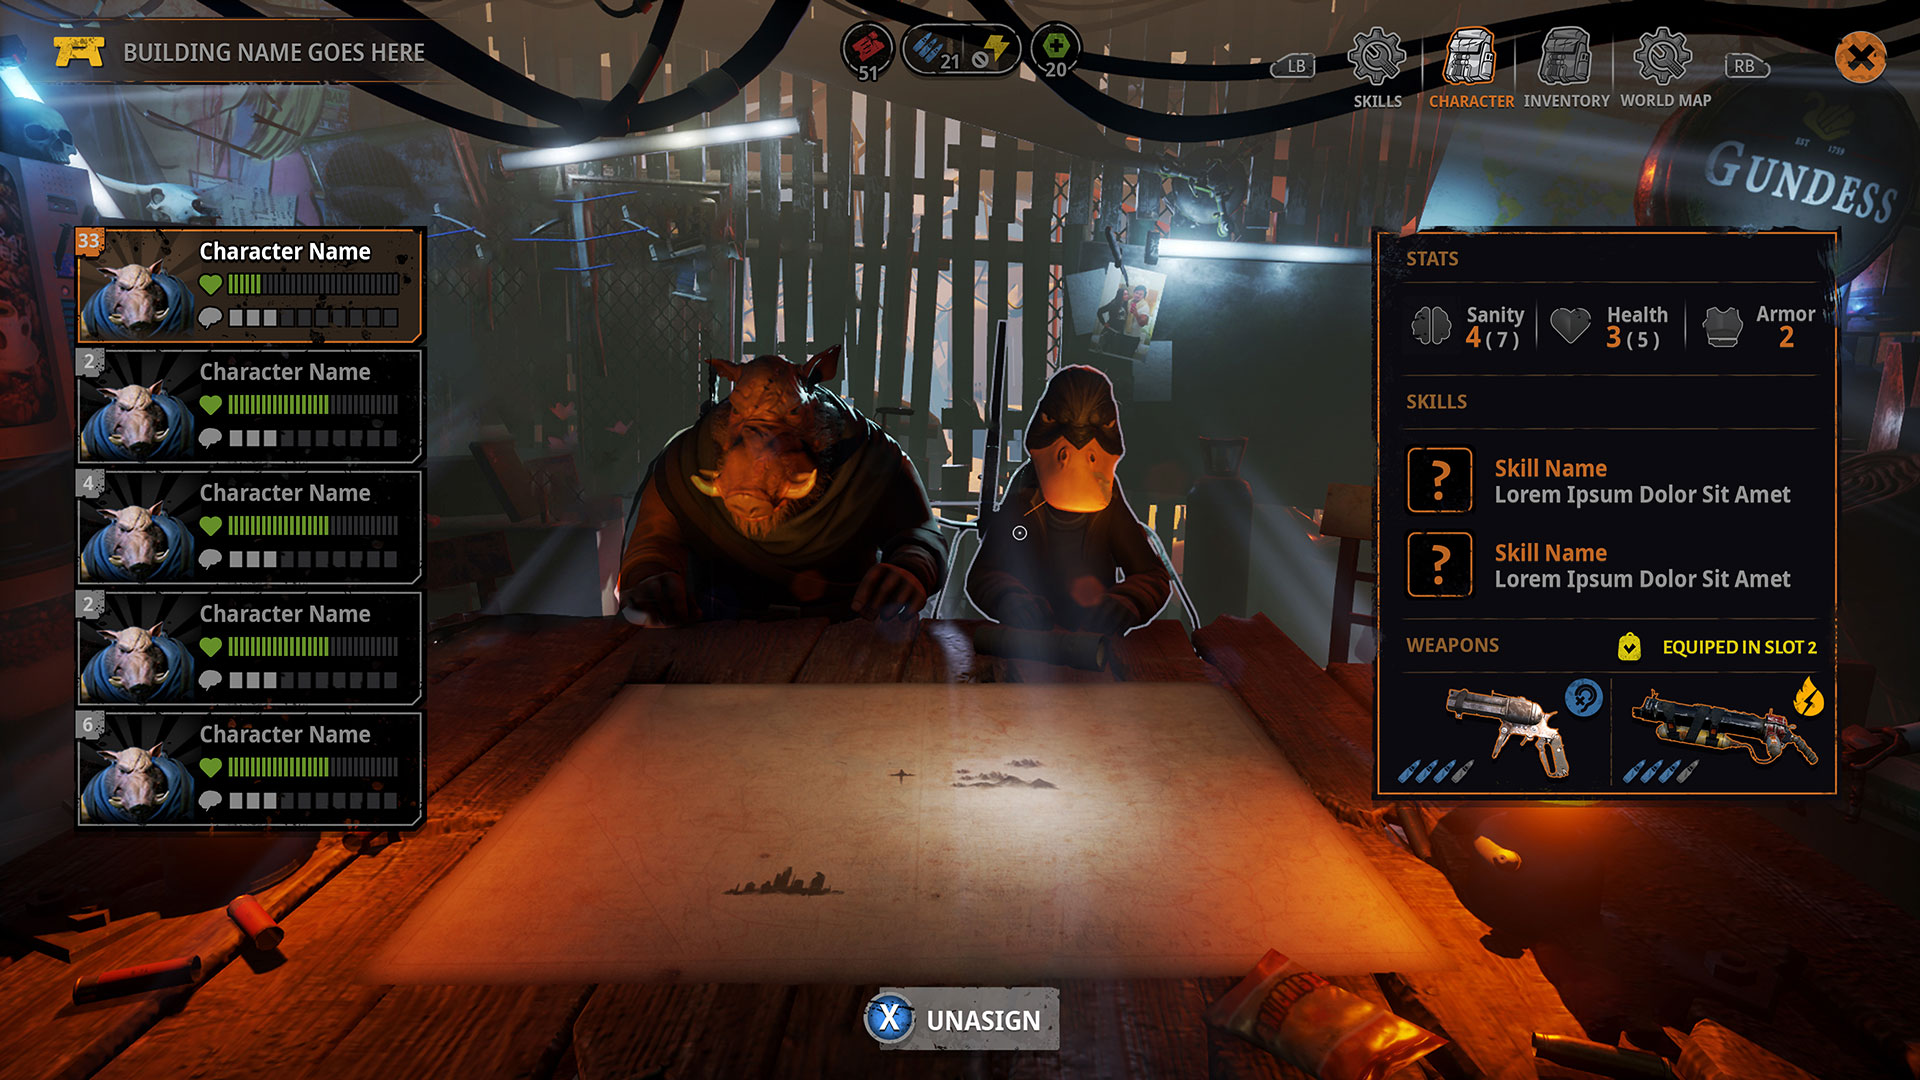 funcom-ui-gameinterface-gameart-roadtoeden-ps4-xbox-tactical-adventure-game-xcom-turn-based-gameux-game-experience-design06